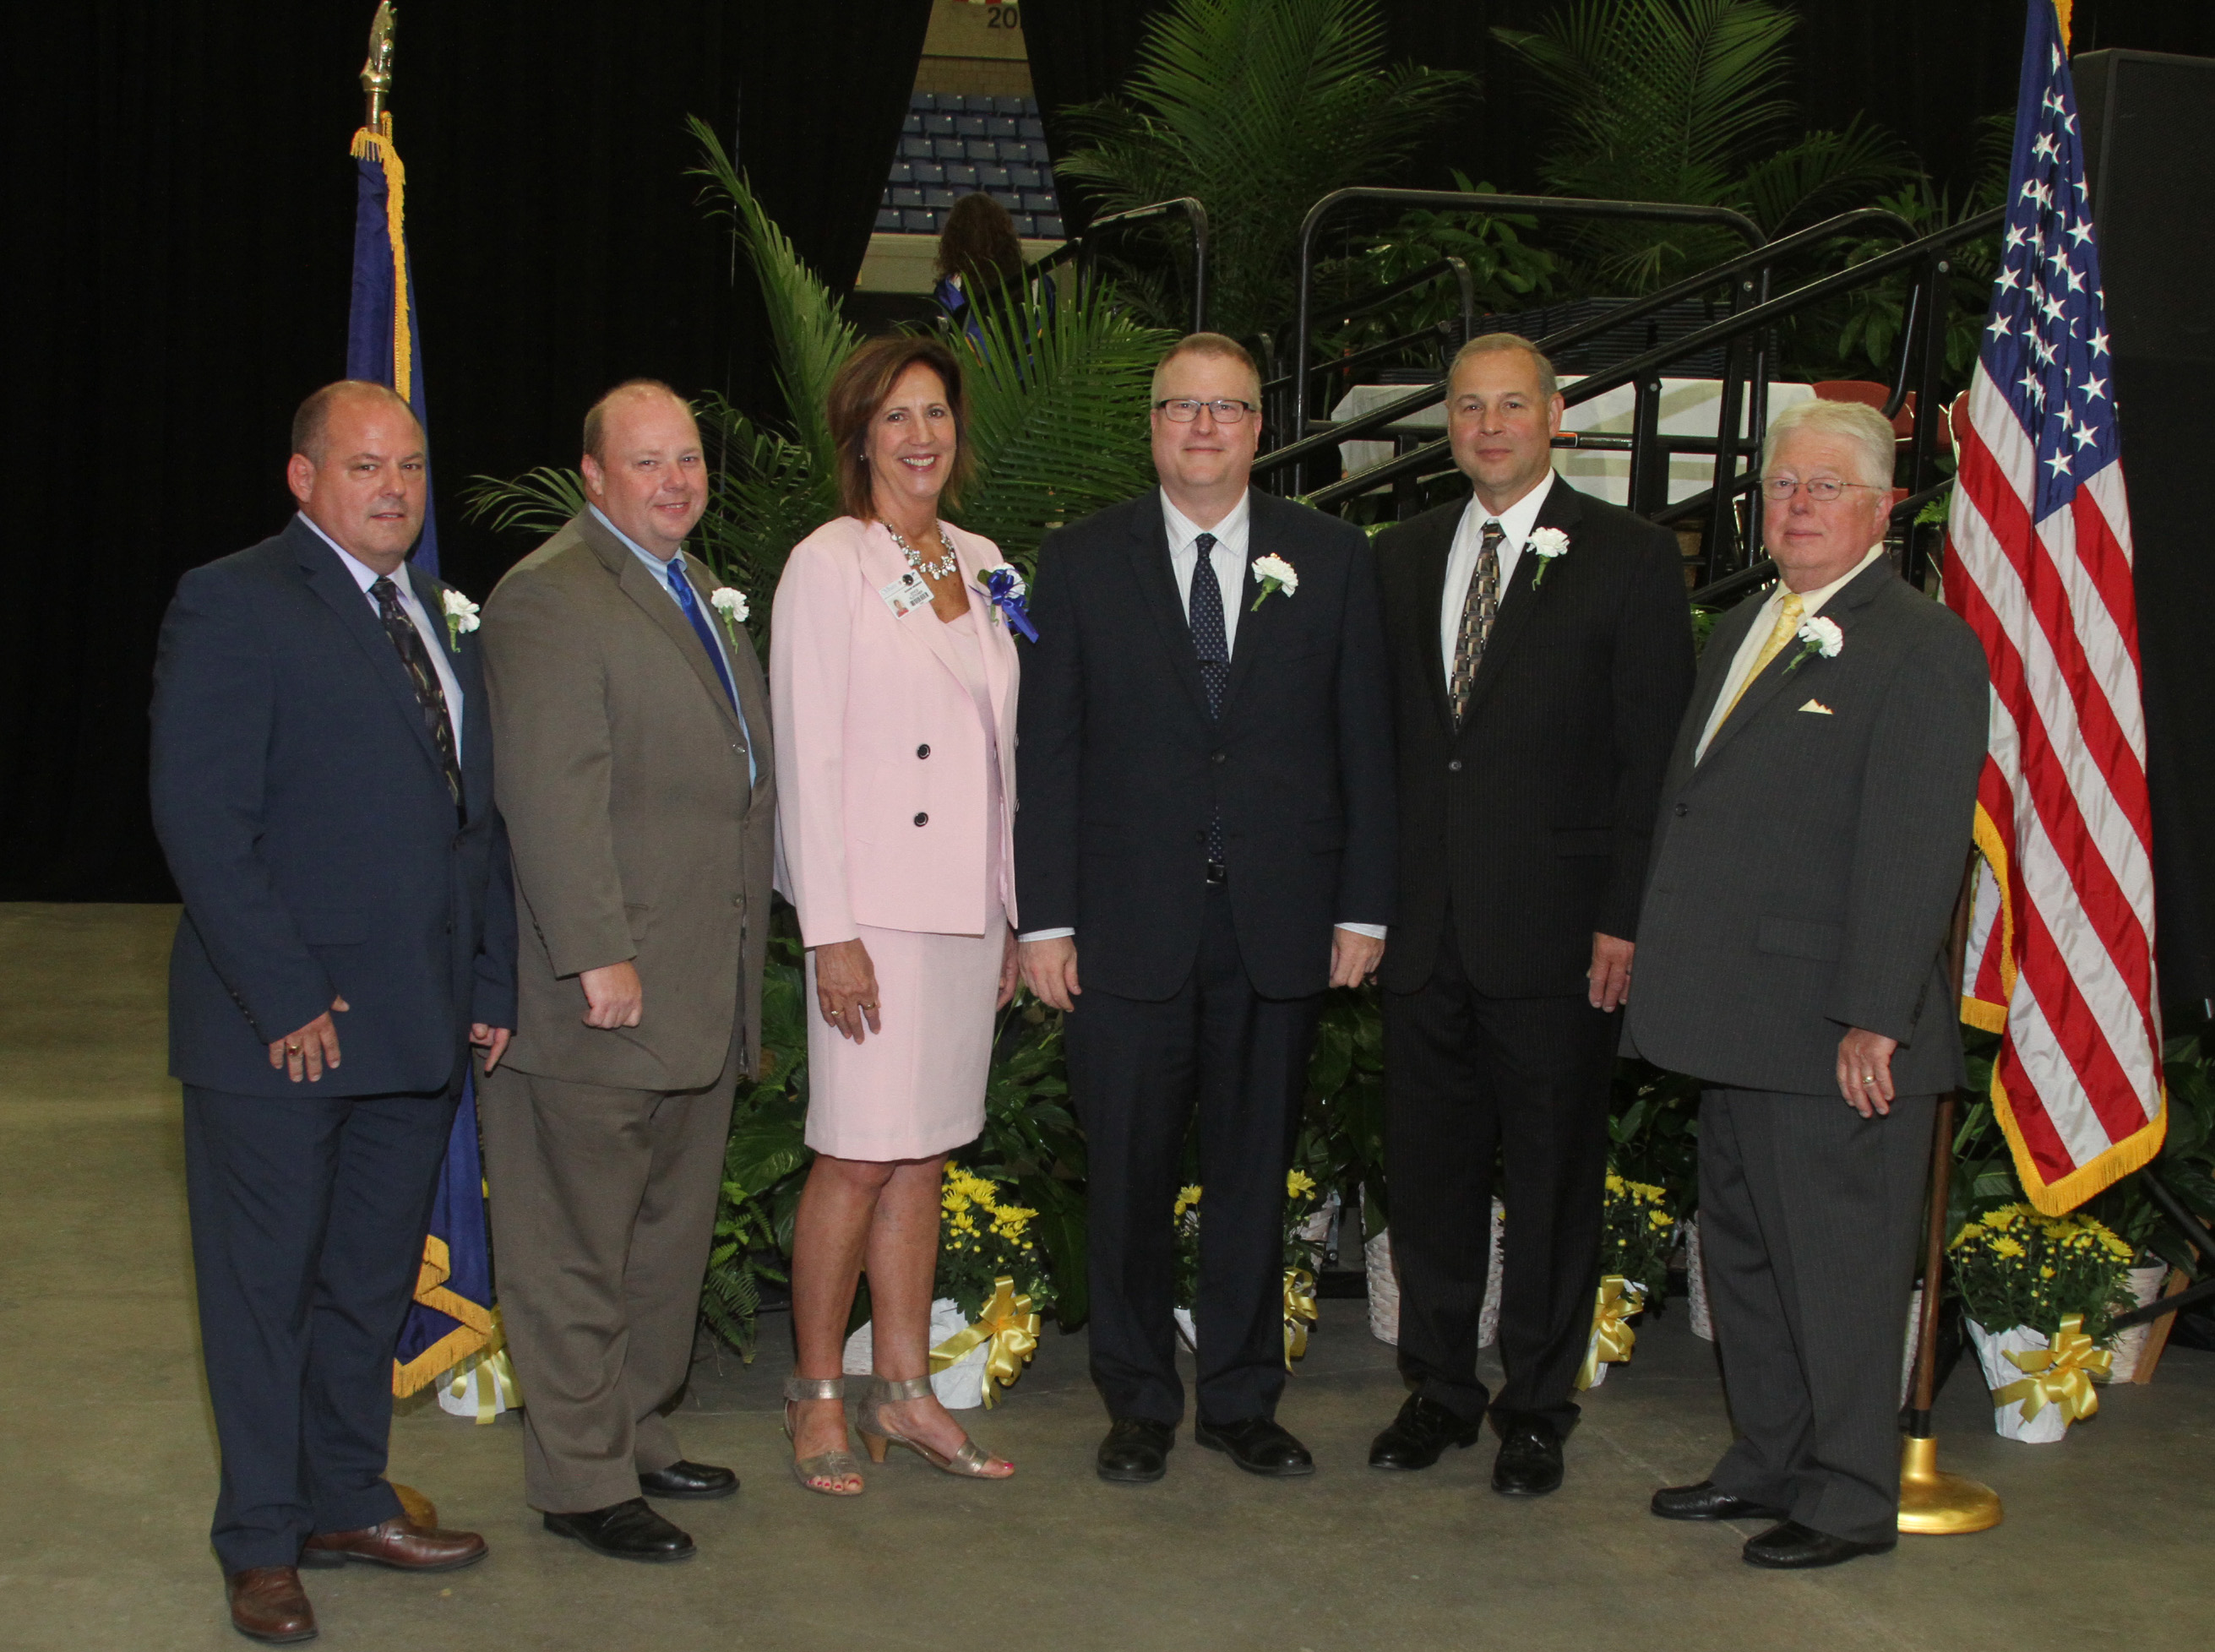 Oldham County Schools Superintendent and Board Members